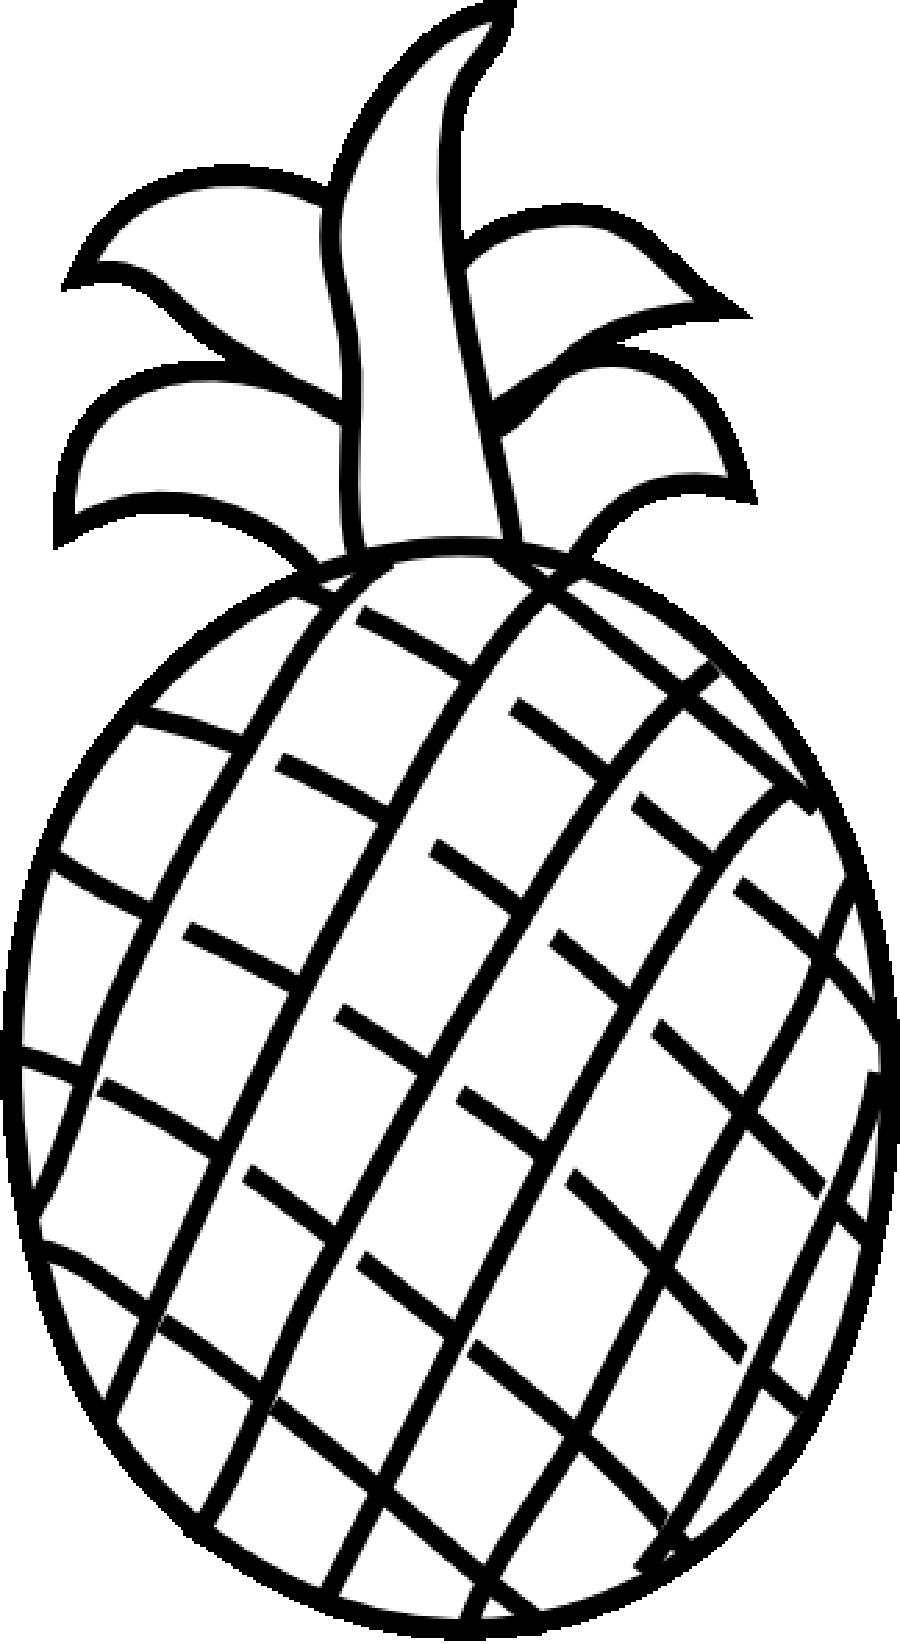 Pineapple clipart rose apple  Pineapple fruits Fruit pages